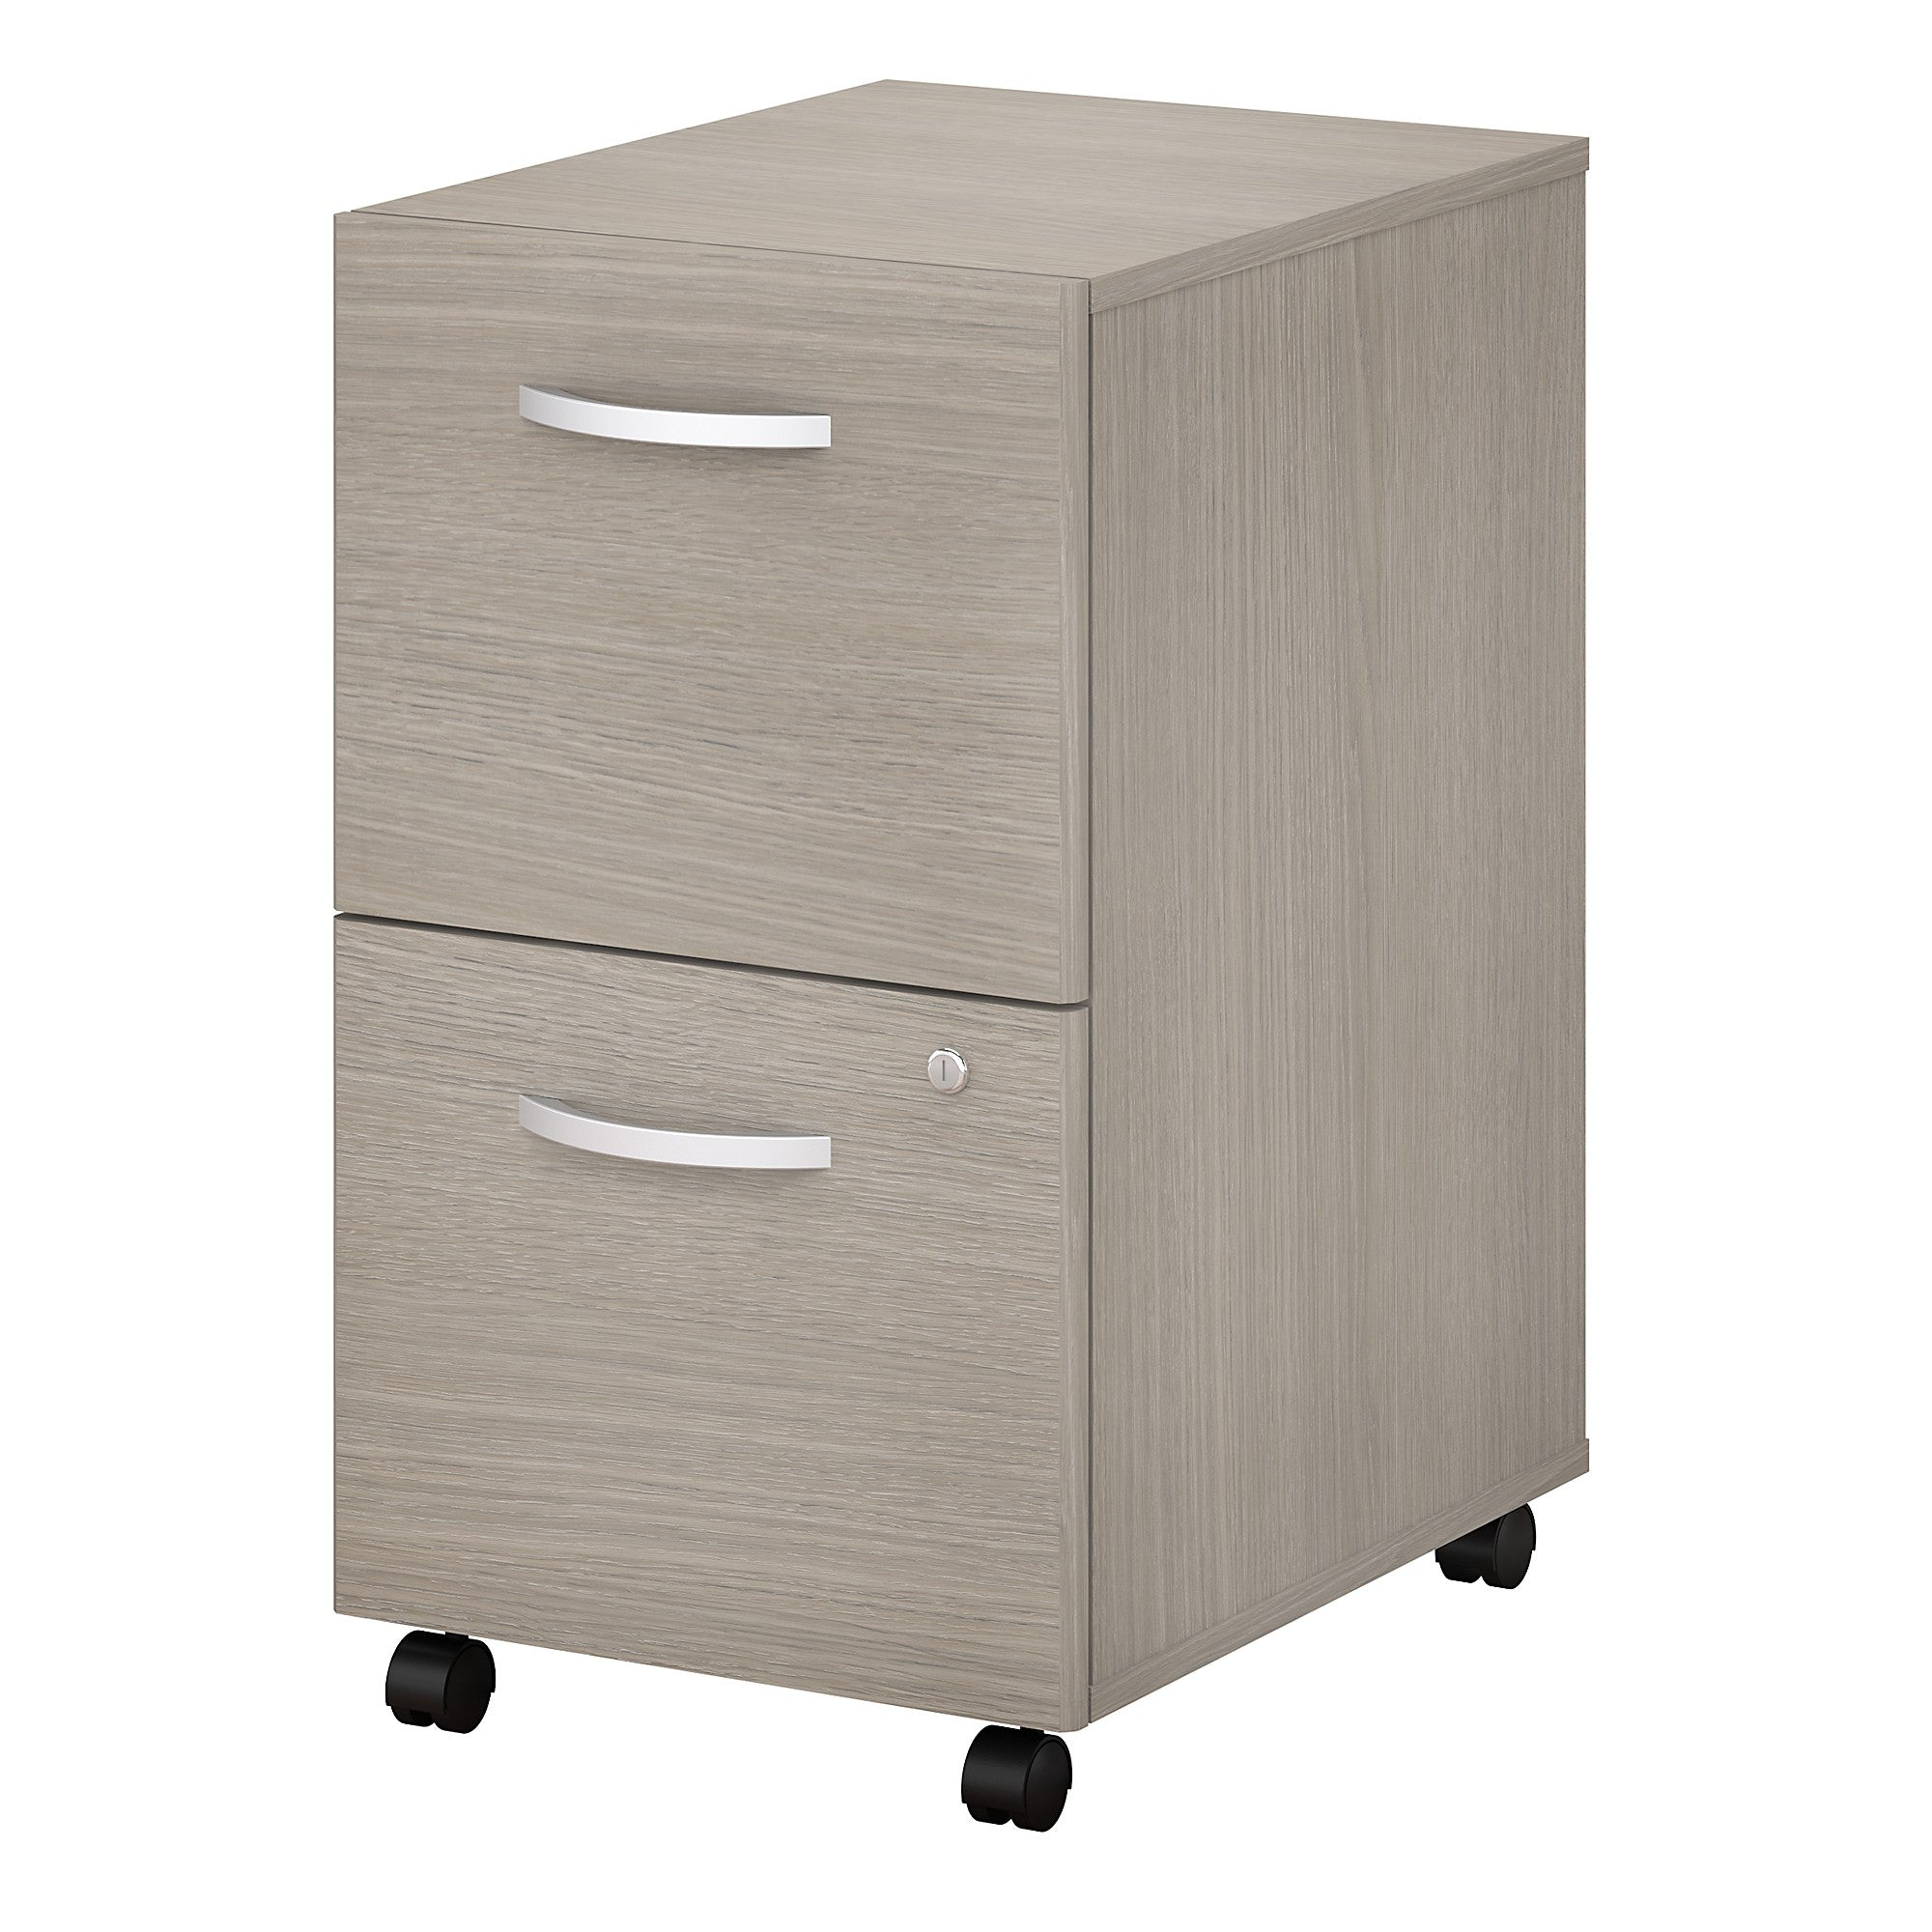 Studio C 2 Drawer Mobile File Cabinet -Sand Oak